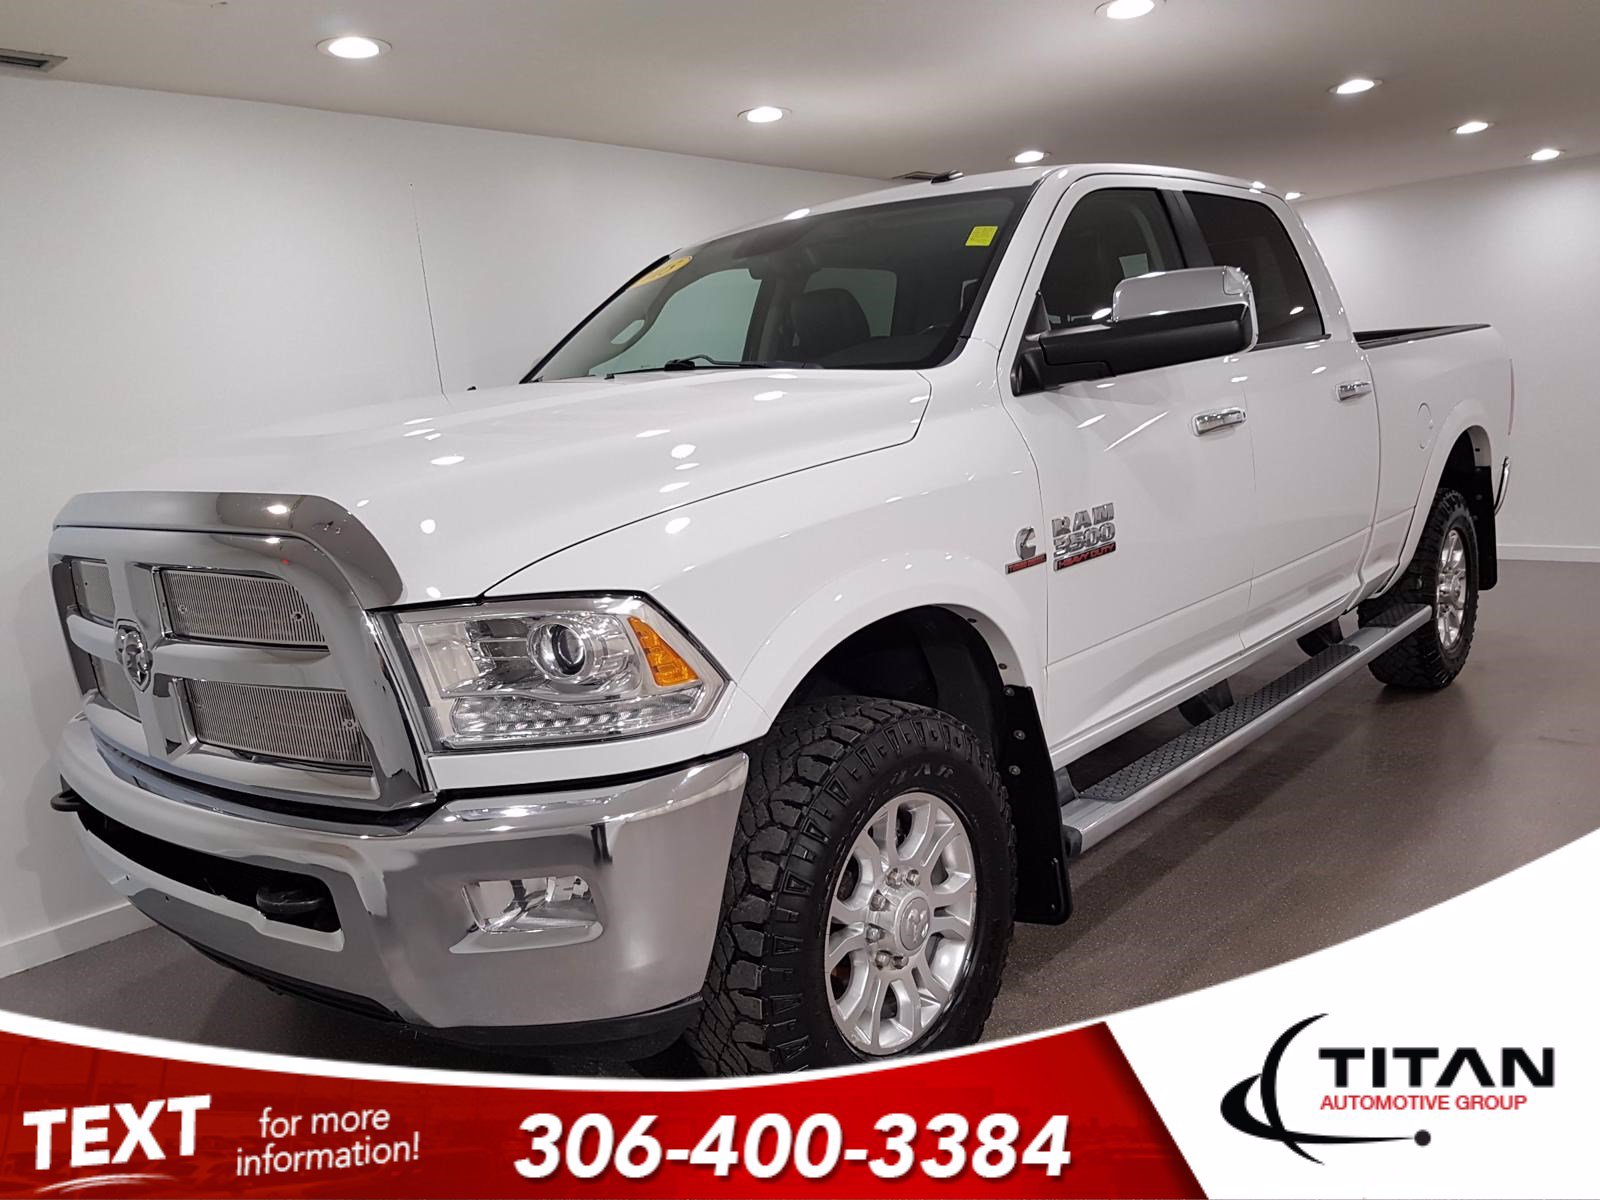 Pre-Owned 2015 Ram 3500 Laramie Crew Cab Cummins Diesel | Sunroof | Navigation | Remote Start